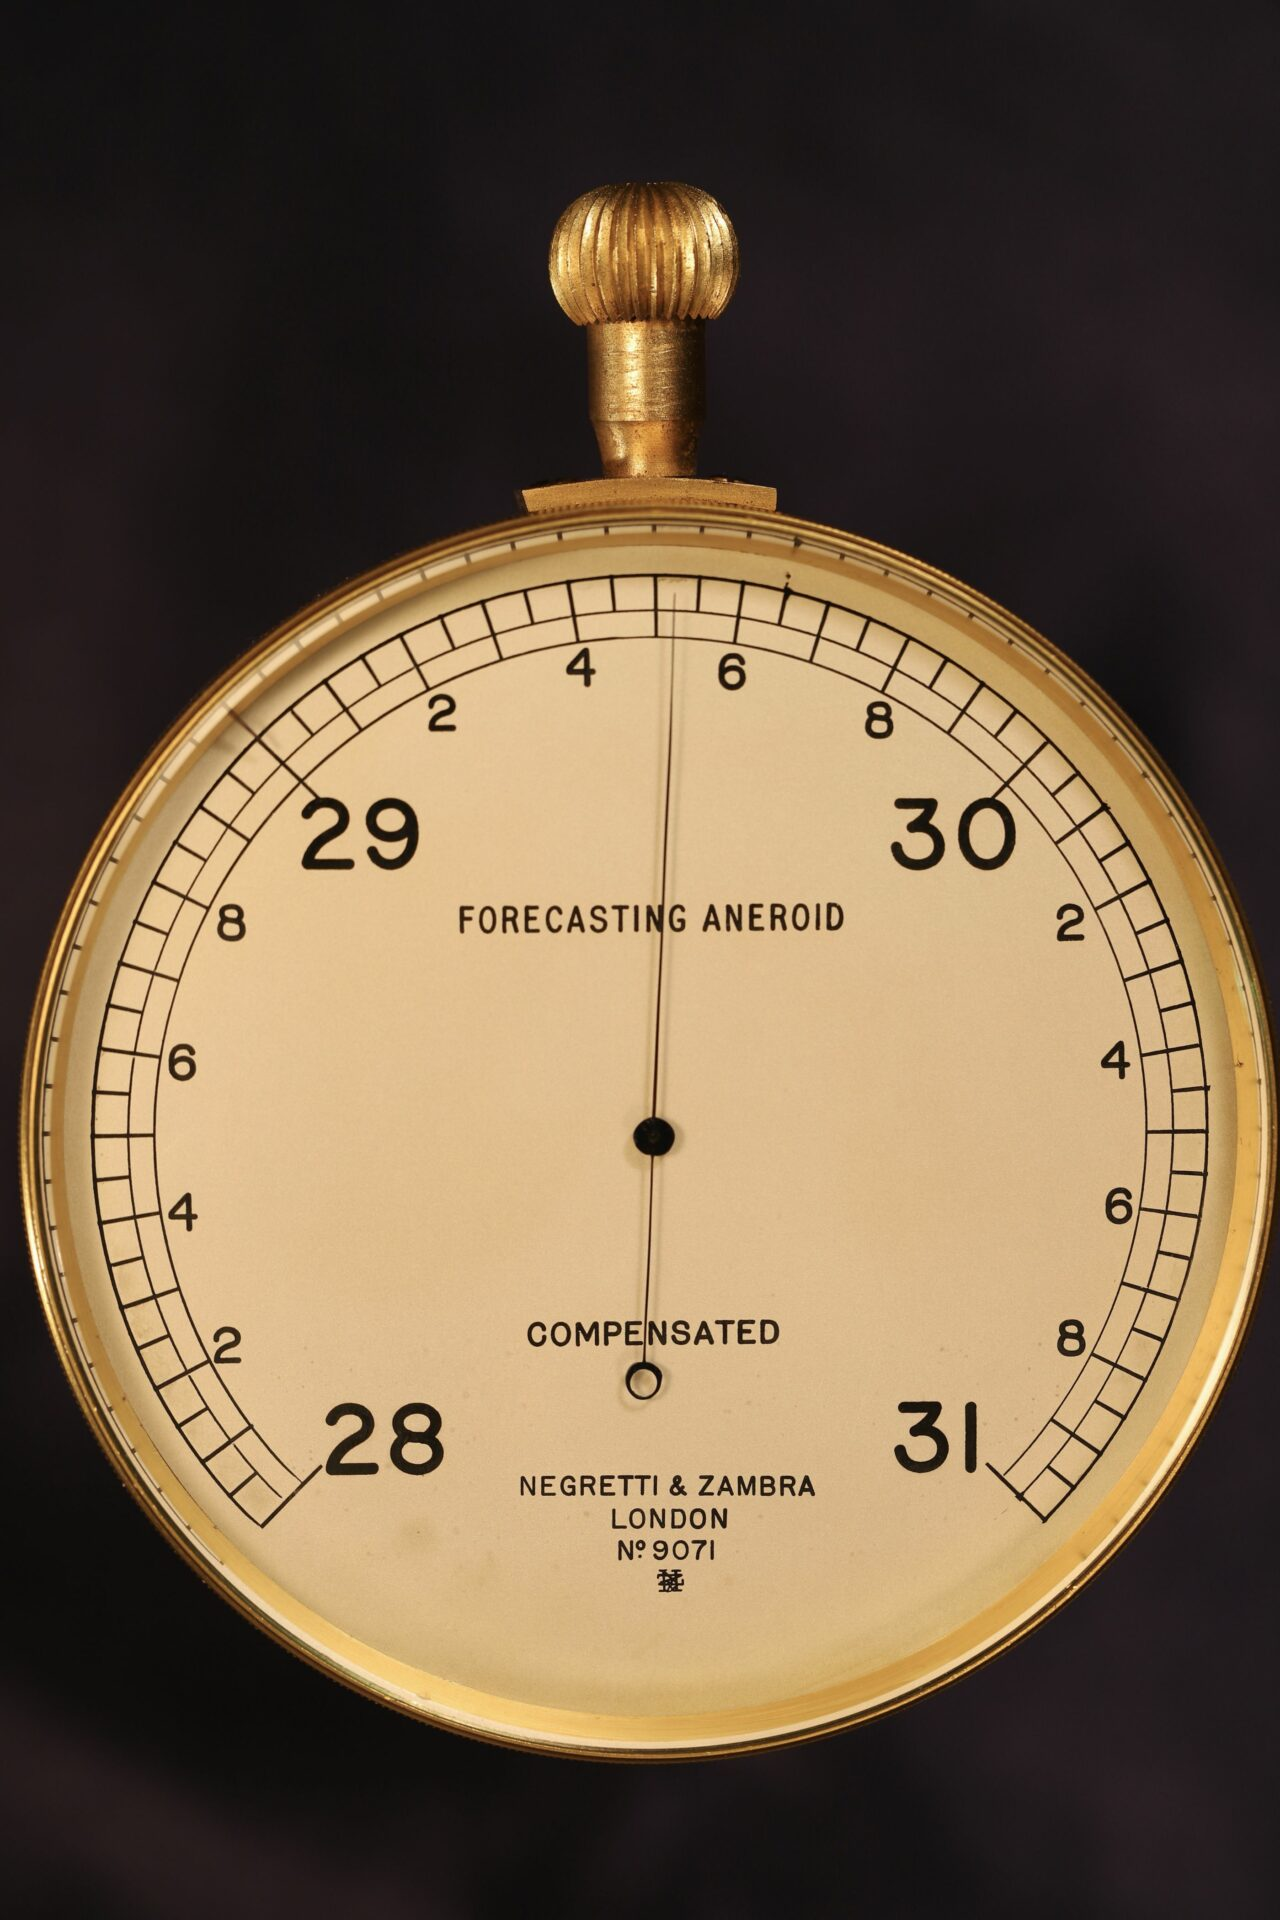 Image of Negretti & Zambra Forecasting Aneroid No 9071 c1920 taken from front